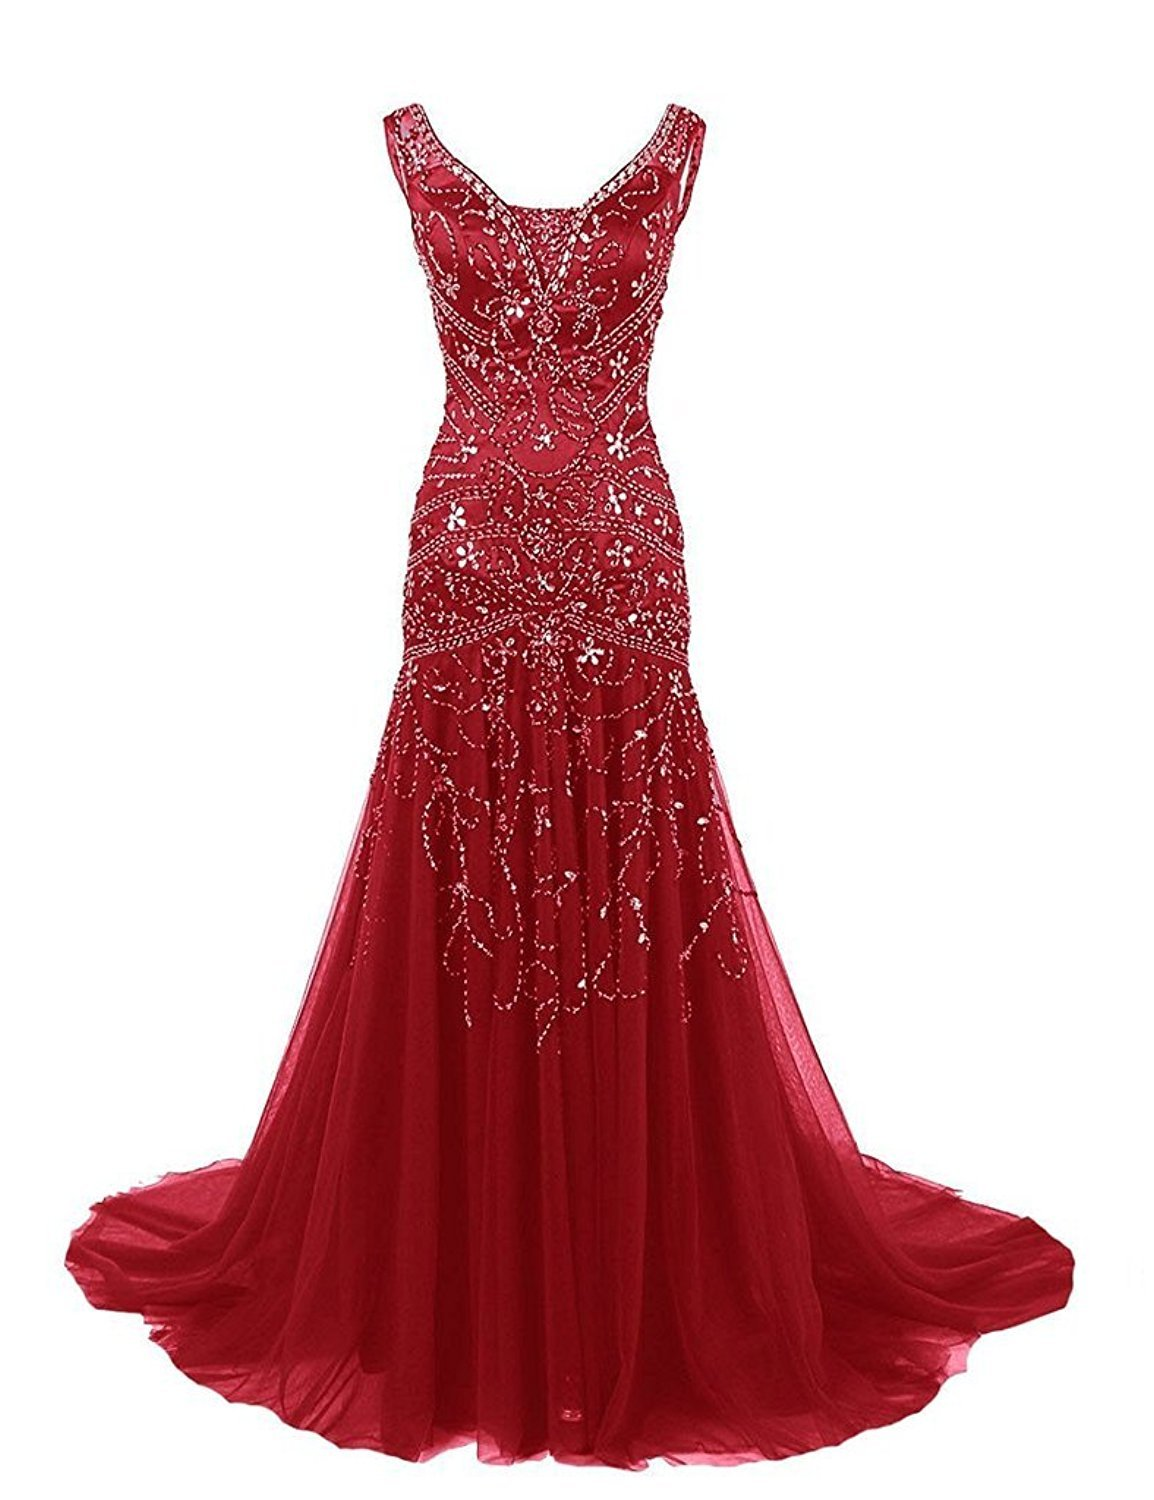 Primary image for Mermaid V Neck Beaded Long Prom Dresses Tulle Formal Evening Dress,Party Dresses